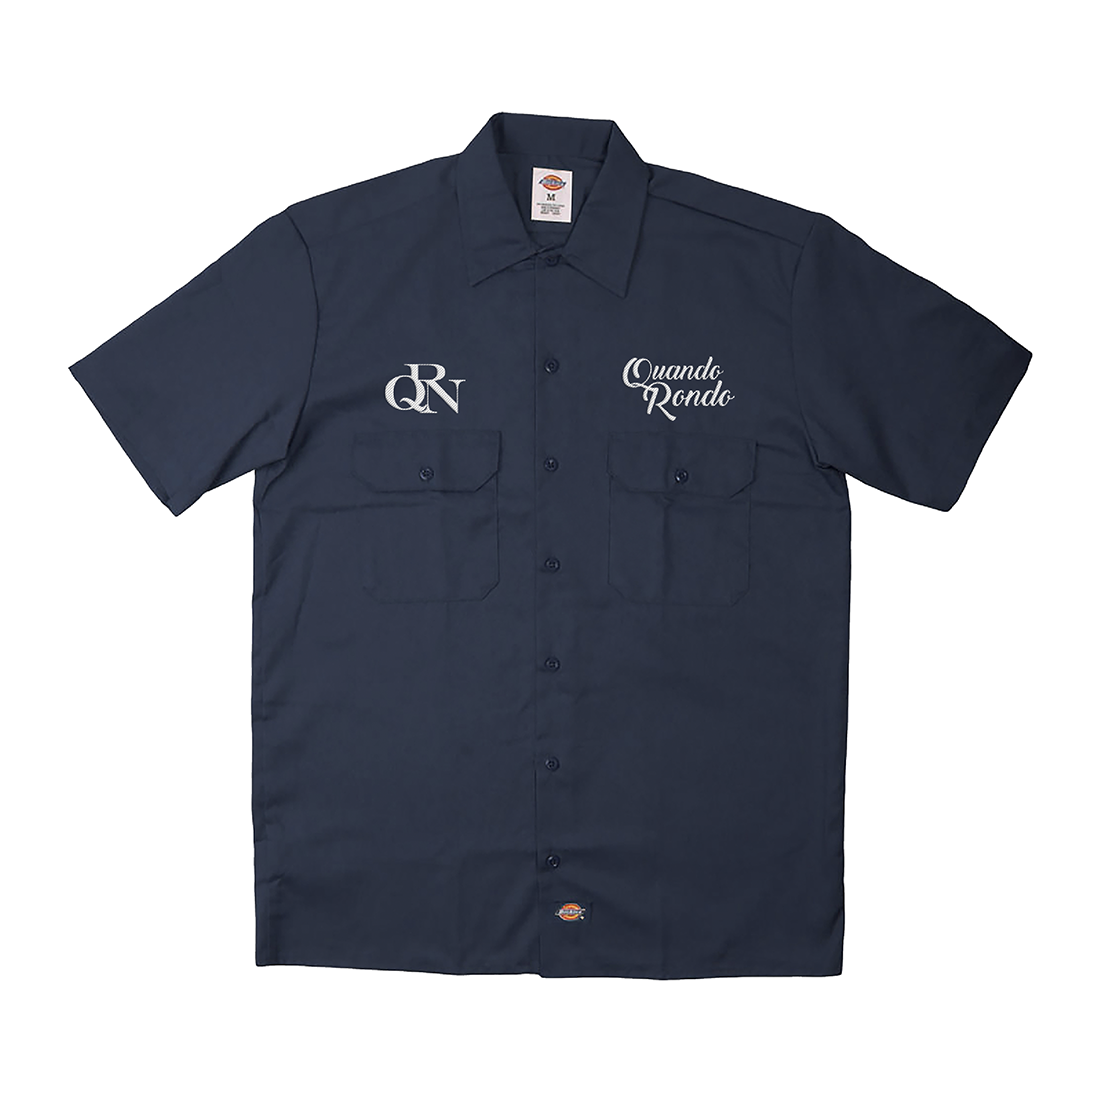 Merch Image Blue shirt